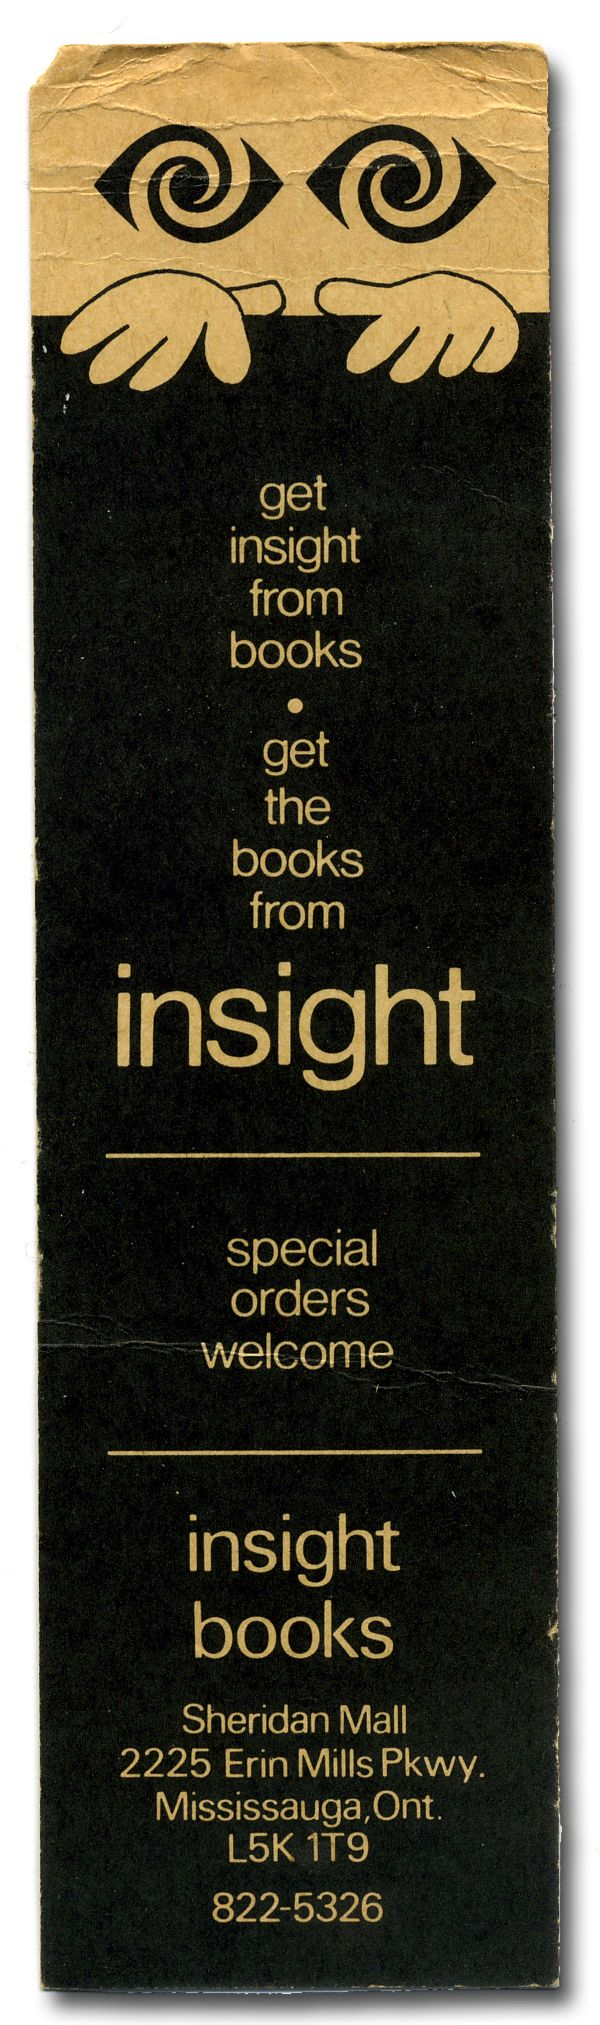 Bookmark from the now defunct Insight Books, Sheridan Mall